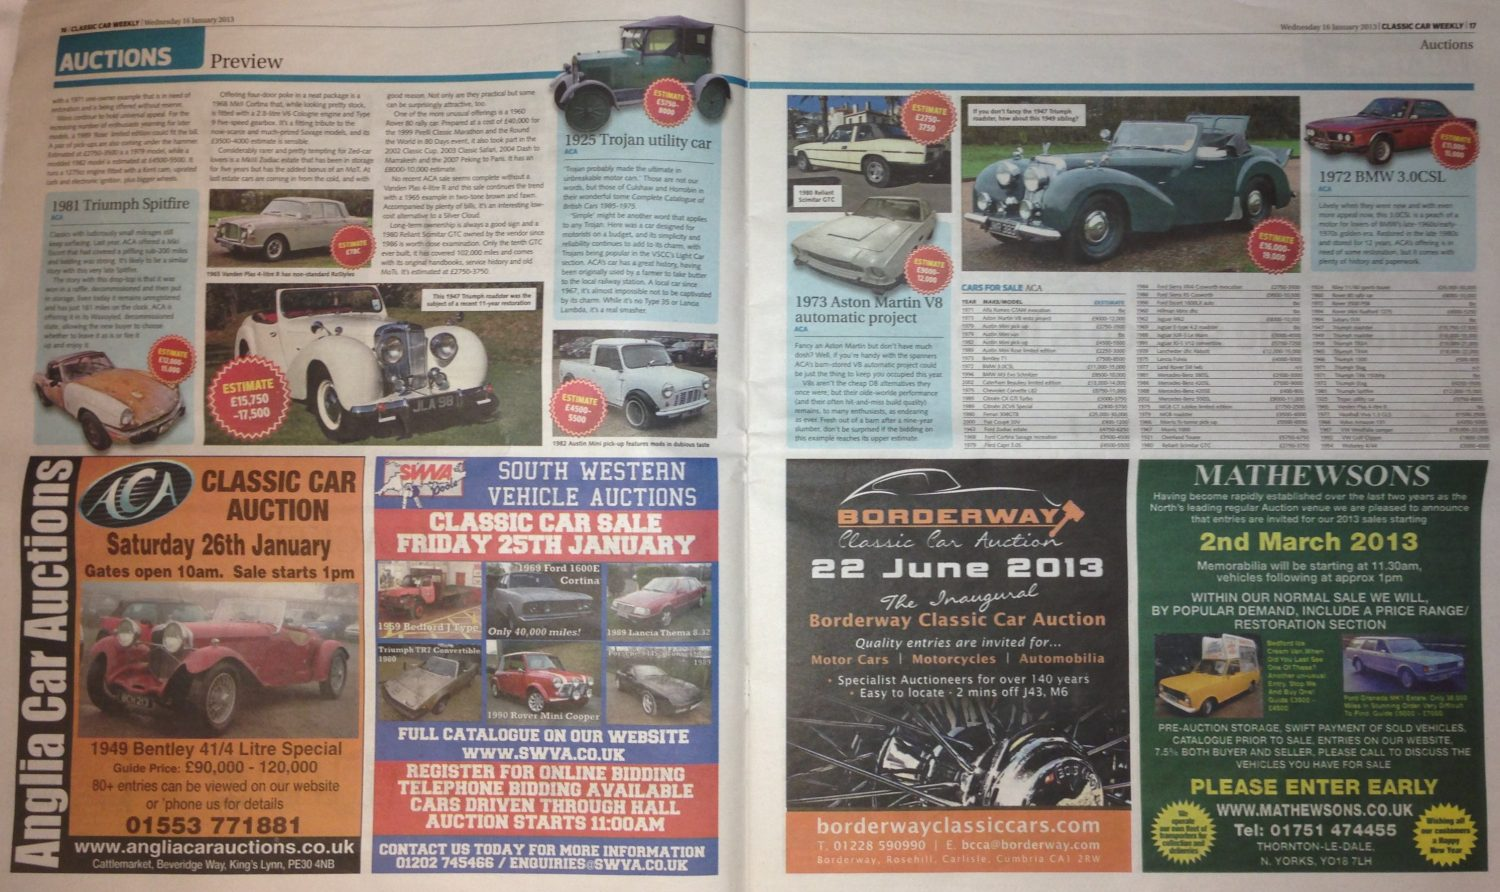 Classic Car Weekly - January 2013 - Bridge Classic Cars